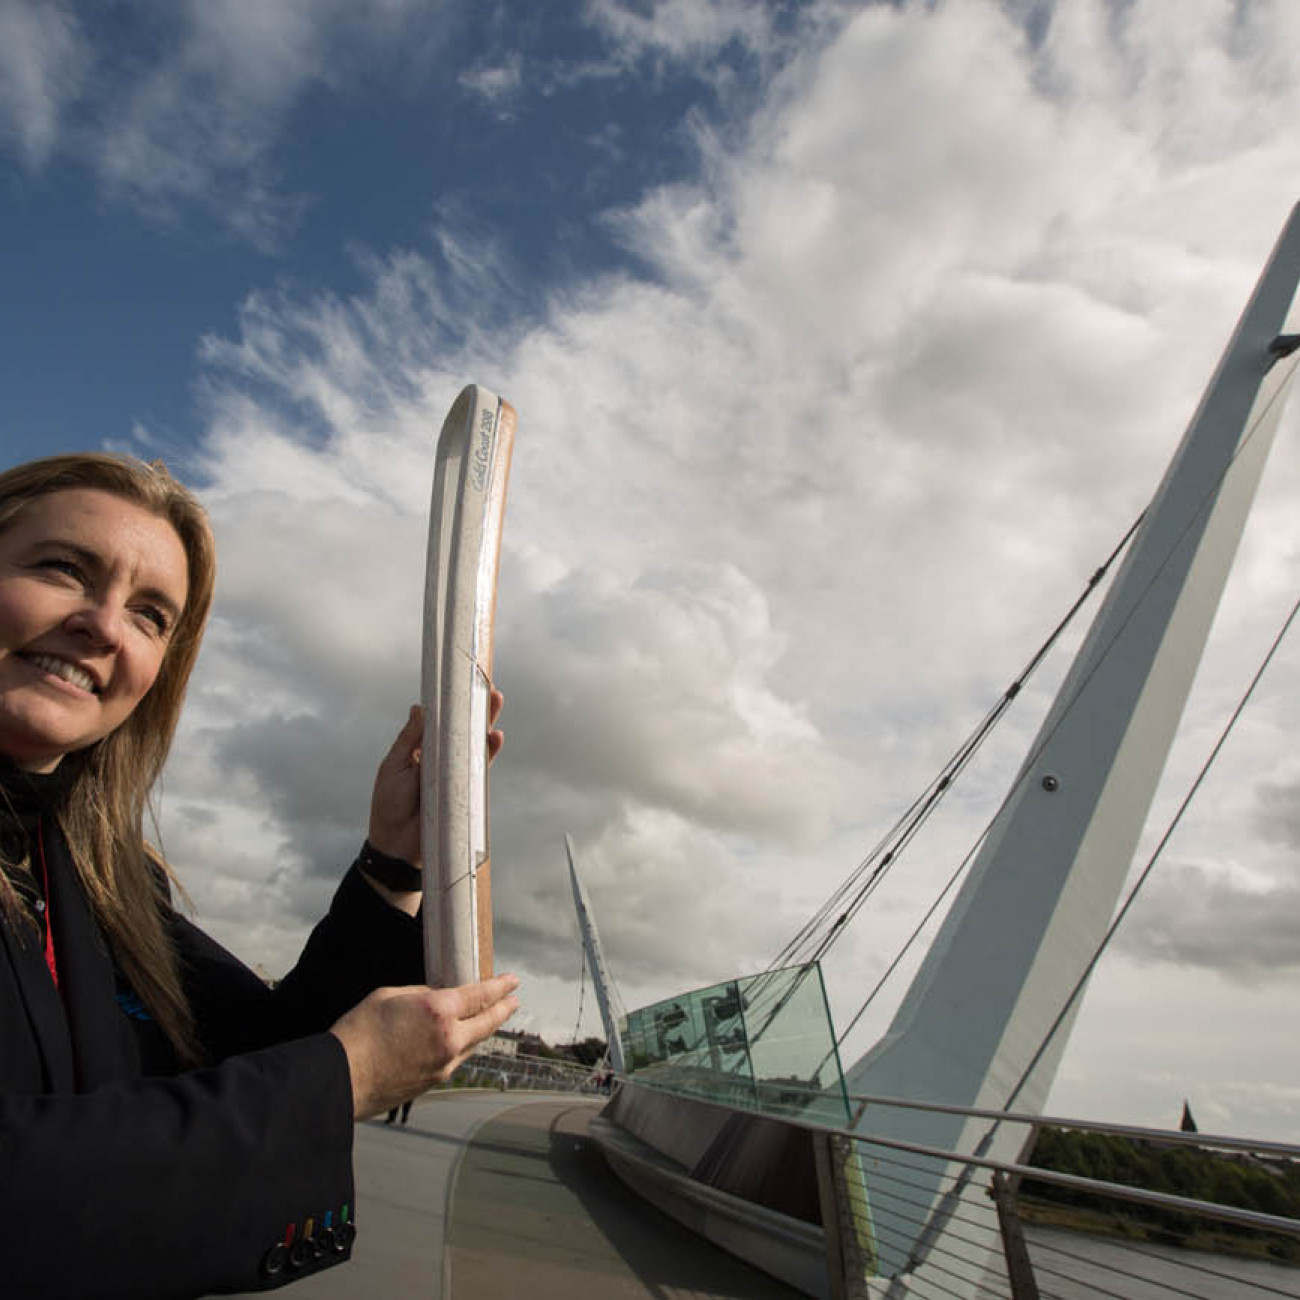 The Queen's Baton, carried by Dr. Lisa Bradley (Manchester 2002, silver medal, judo) on Peace Bridge, in Derry/Londonderry, in Northern Ireland, on 29 August 2017.